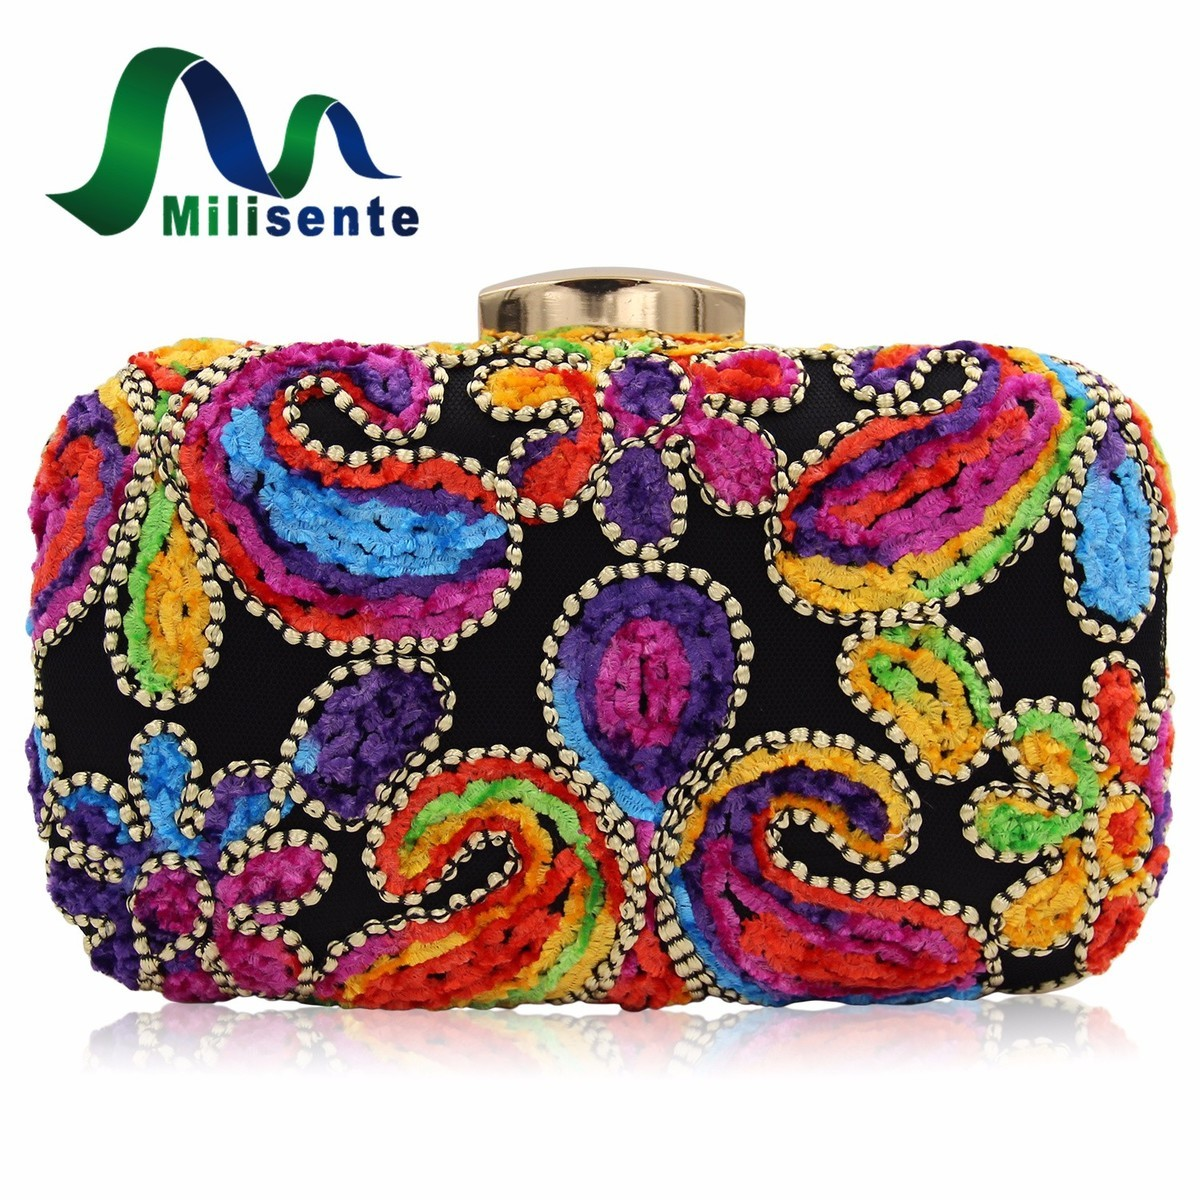 milisente 2017 new design women velour day clutches evening bag lady party purse wedding clutch. Black Bedroom Furniture Sets. Home Design Ideas